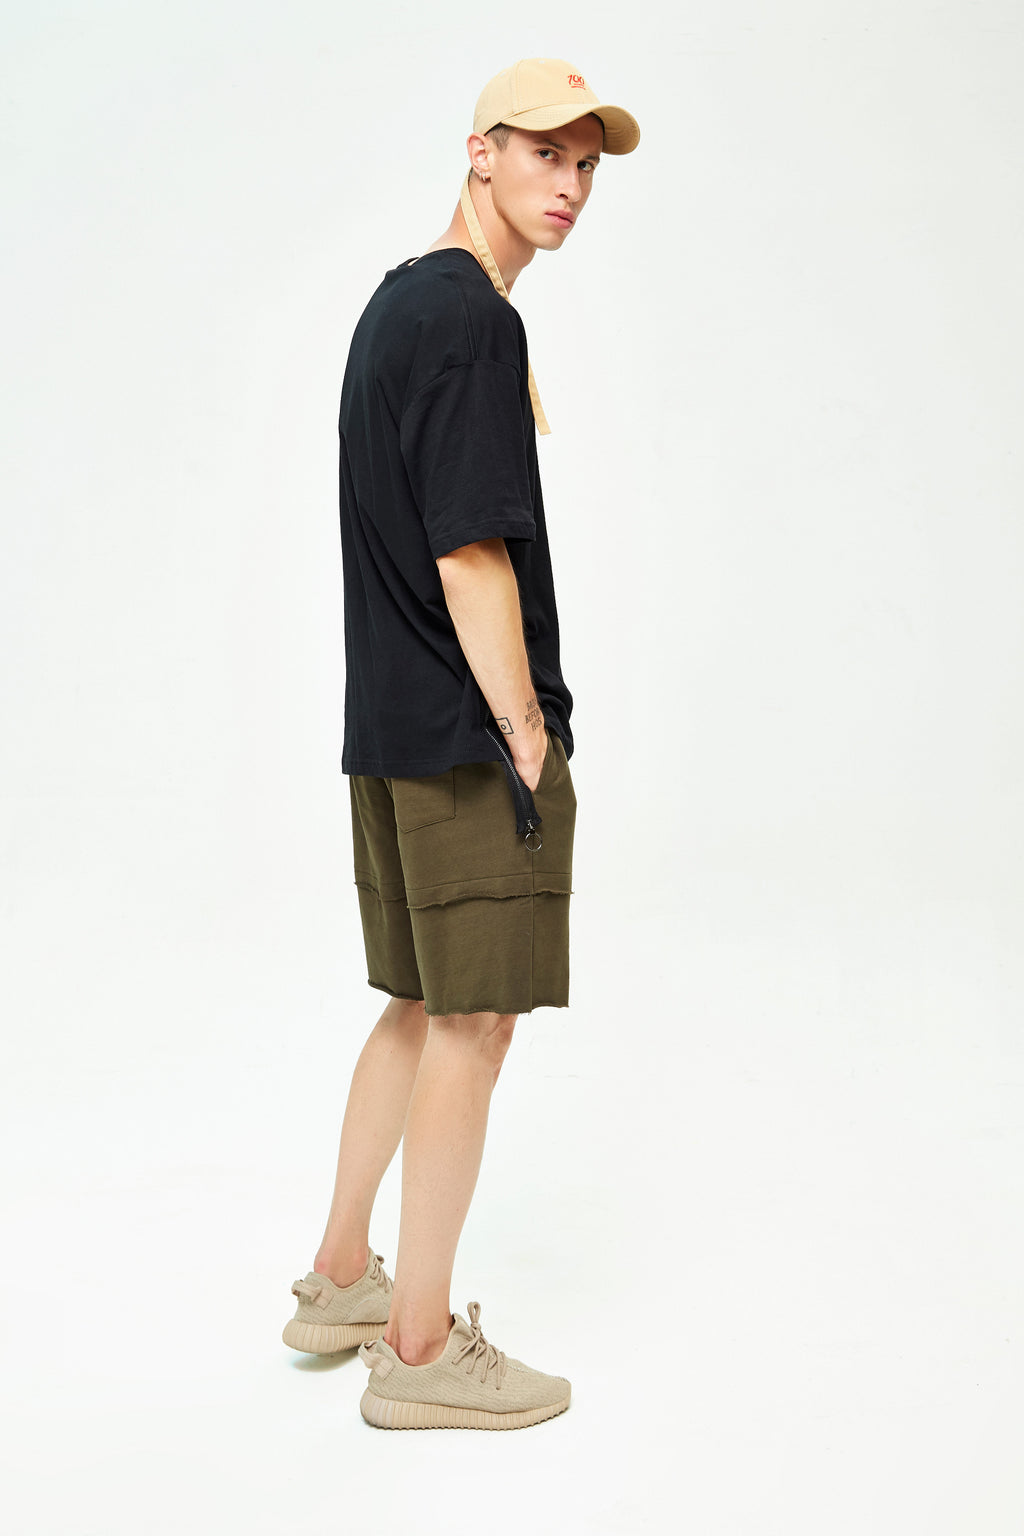 RYAN BLACK OVERSIZED T-SHIRT